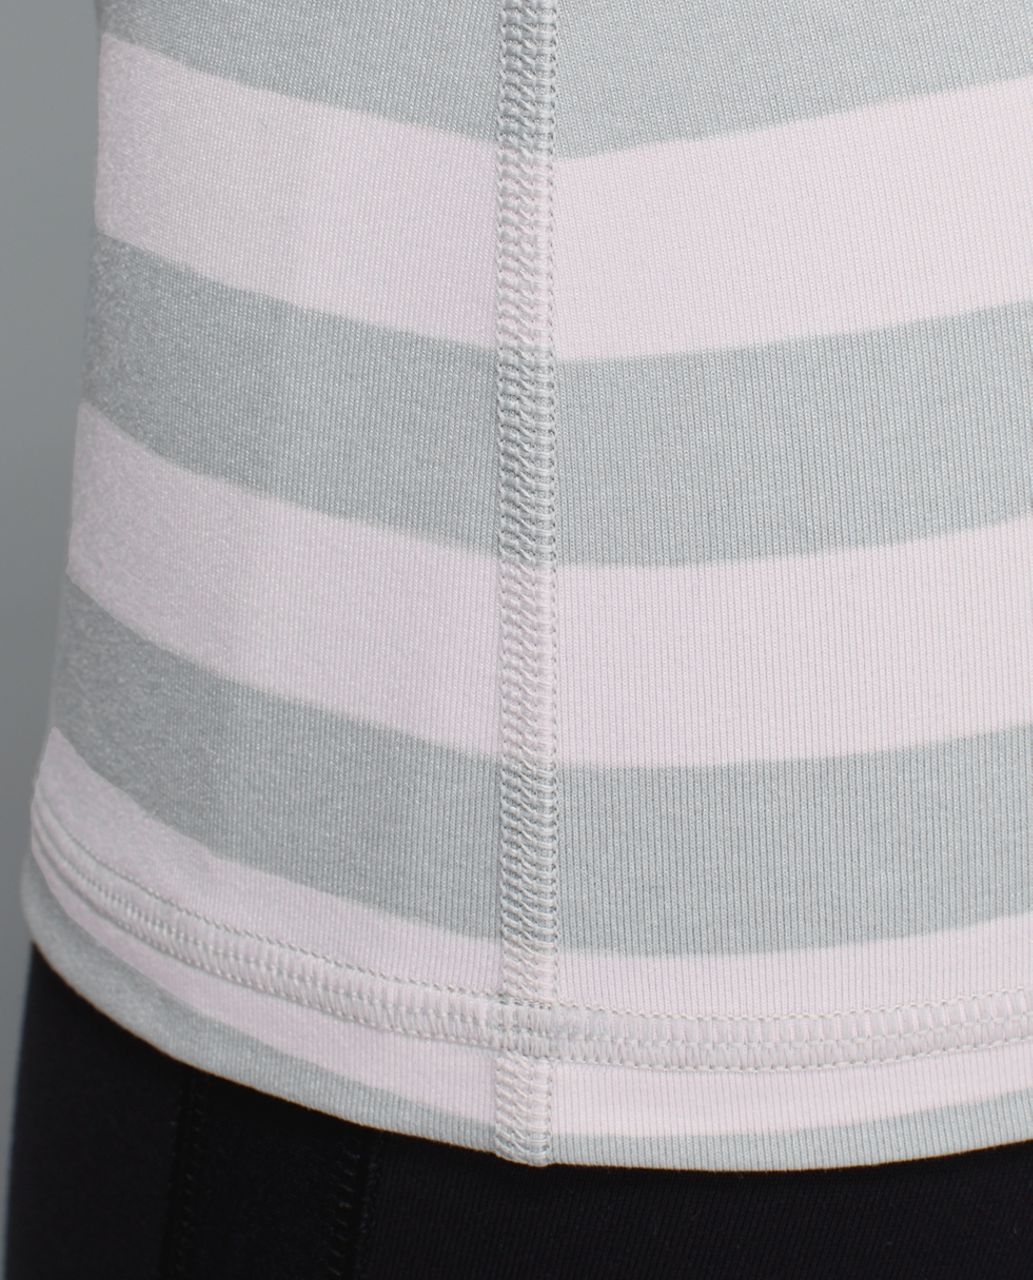 Lululemon Power Y Tank *Luon - Jet Stripe Heathered Silver Spoon Heathered Neutral Blush